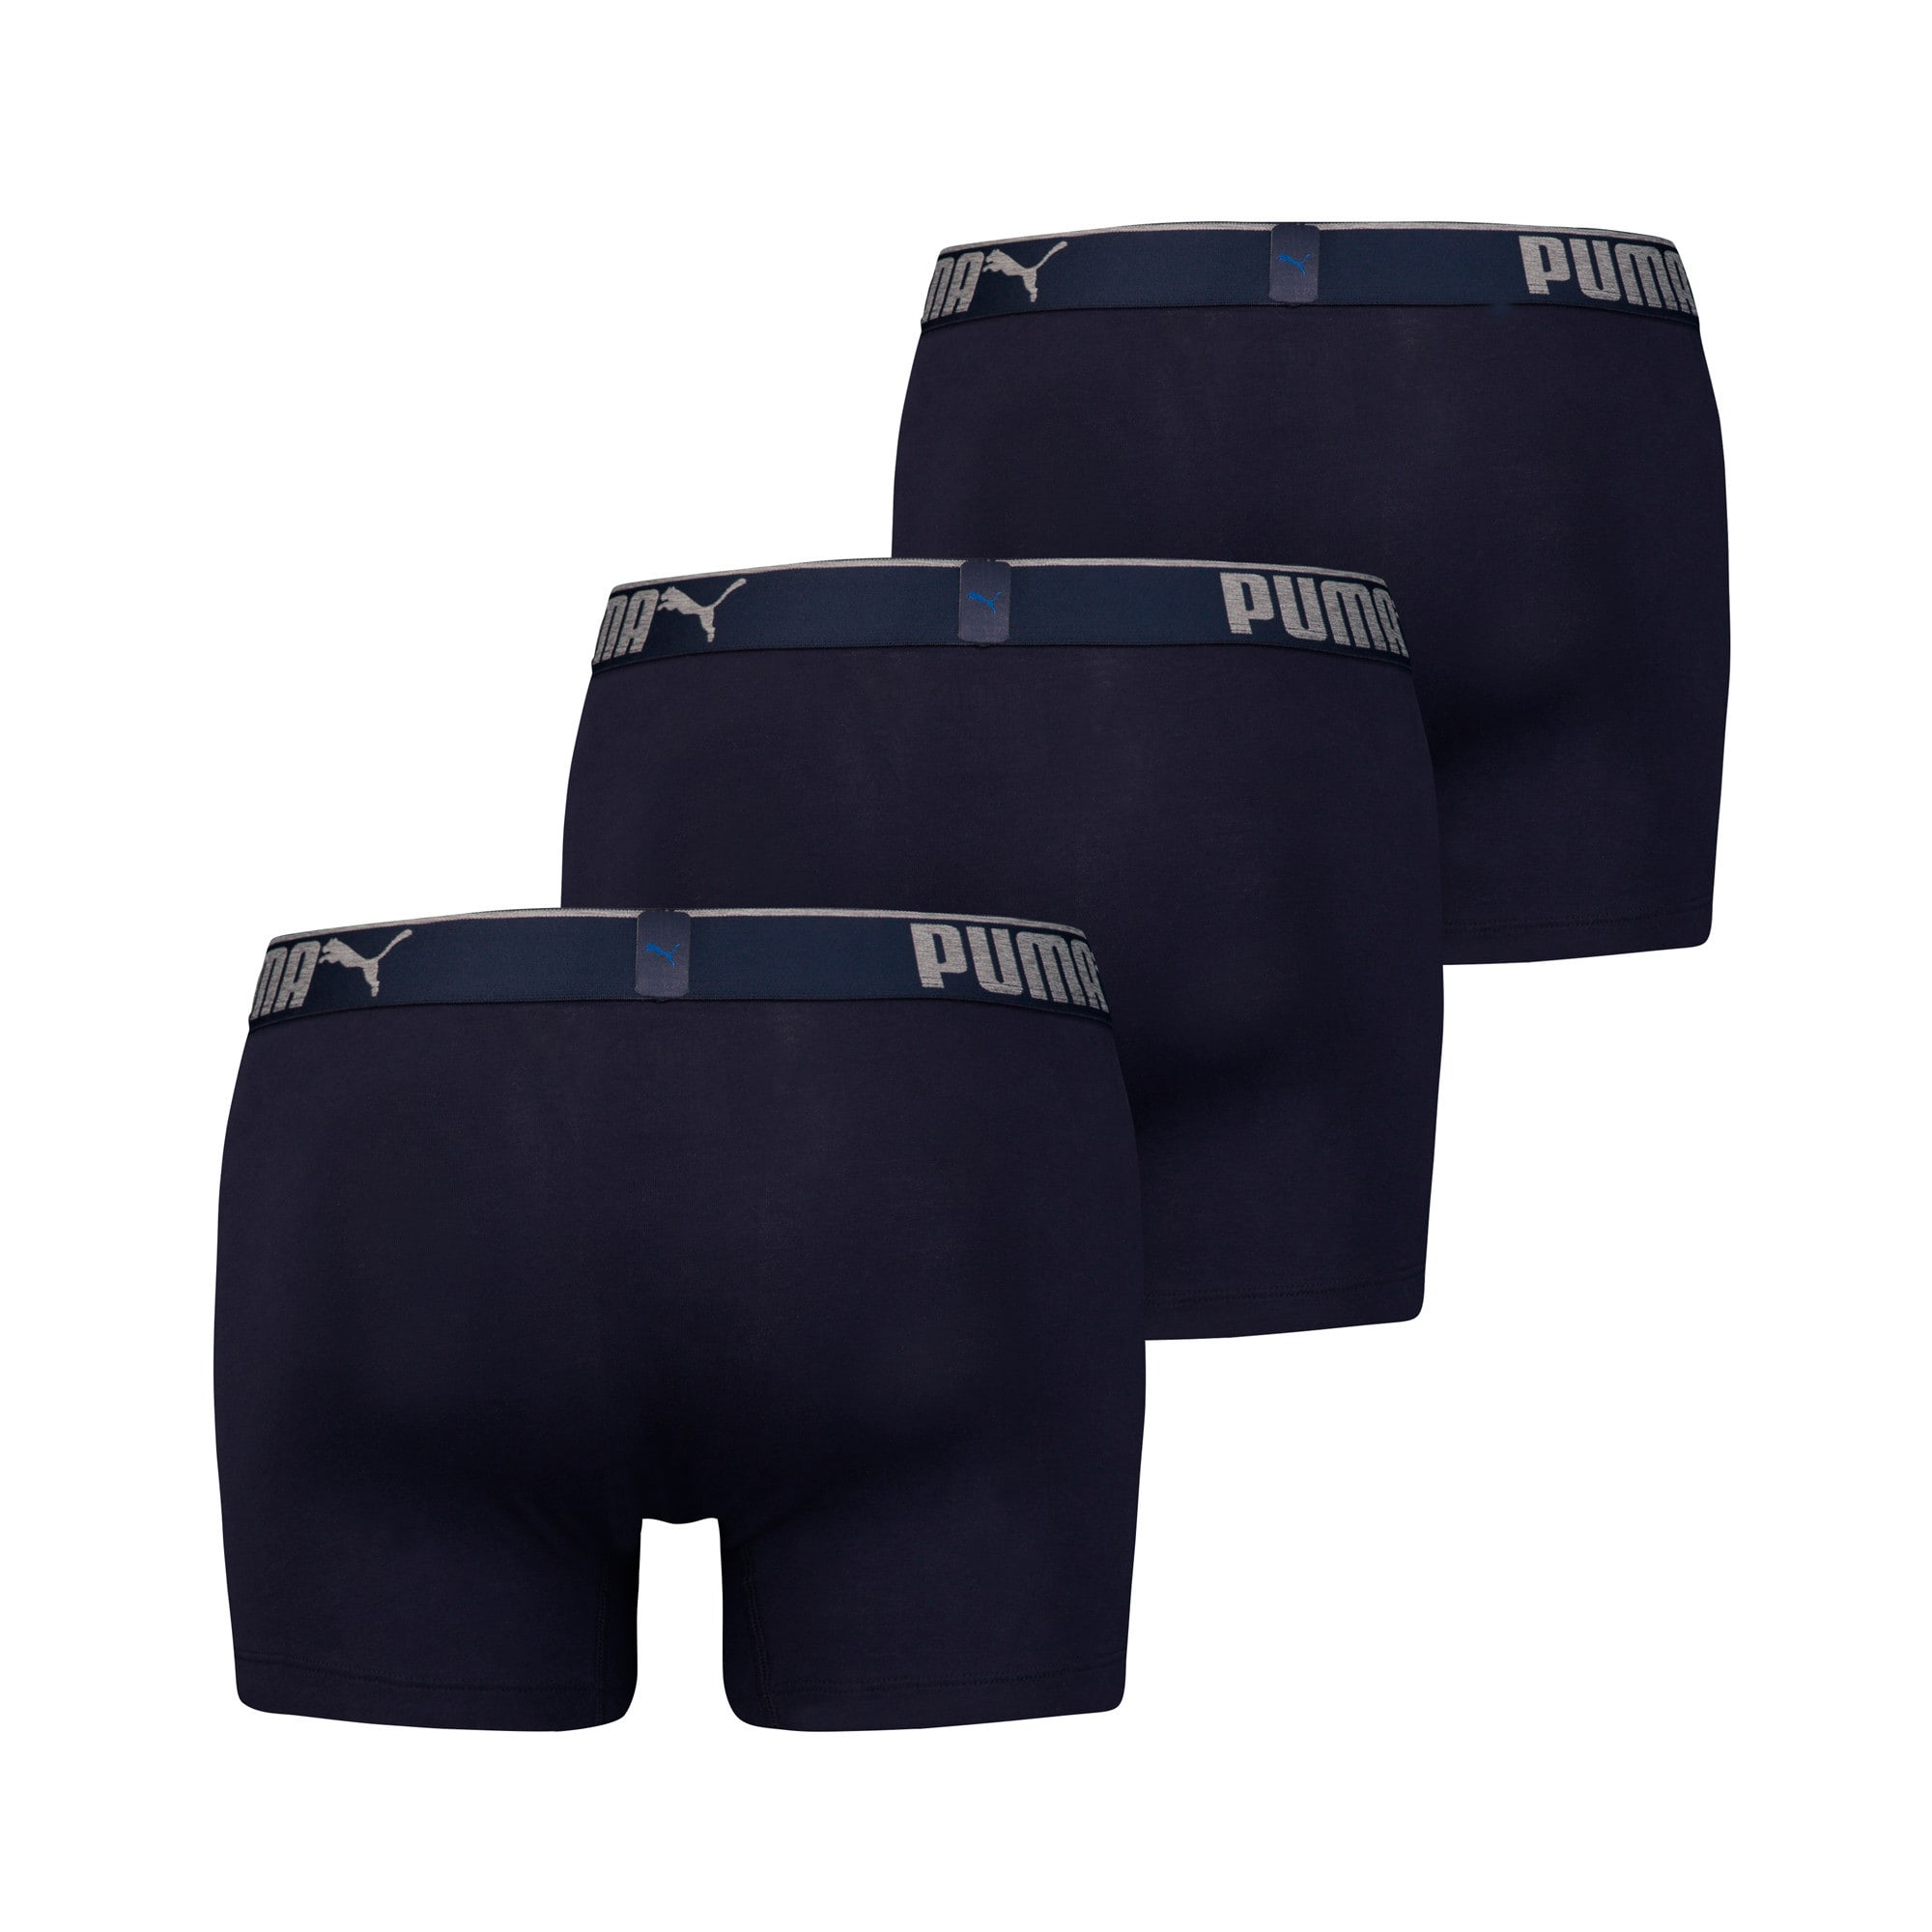 Thumbnail 2 of Men's Lifestyle Sueded Cotton Boxer Shorts 3 Pack, navy, medium